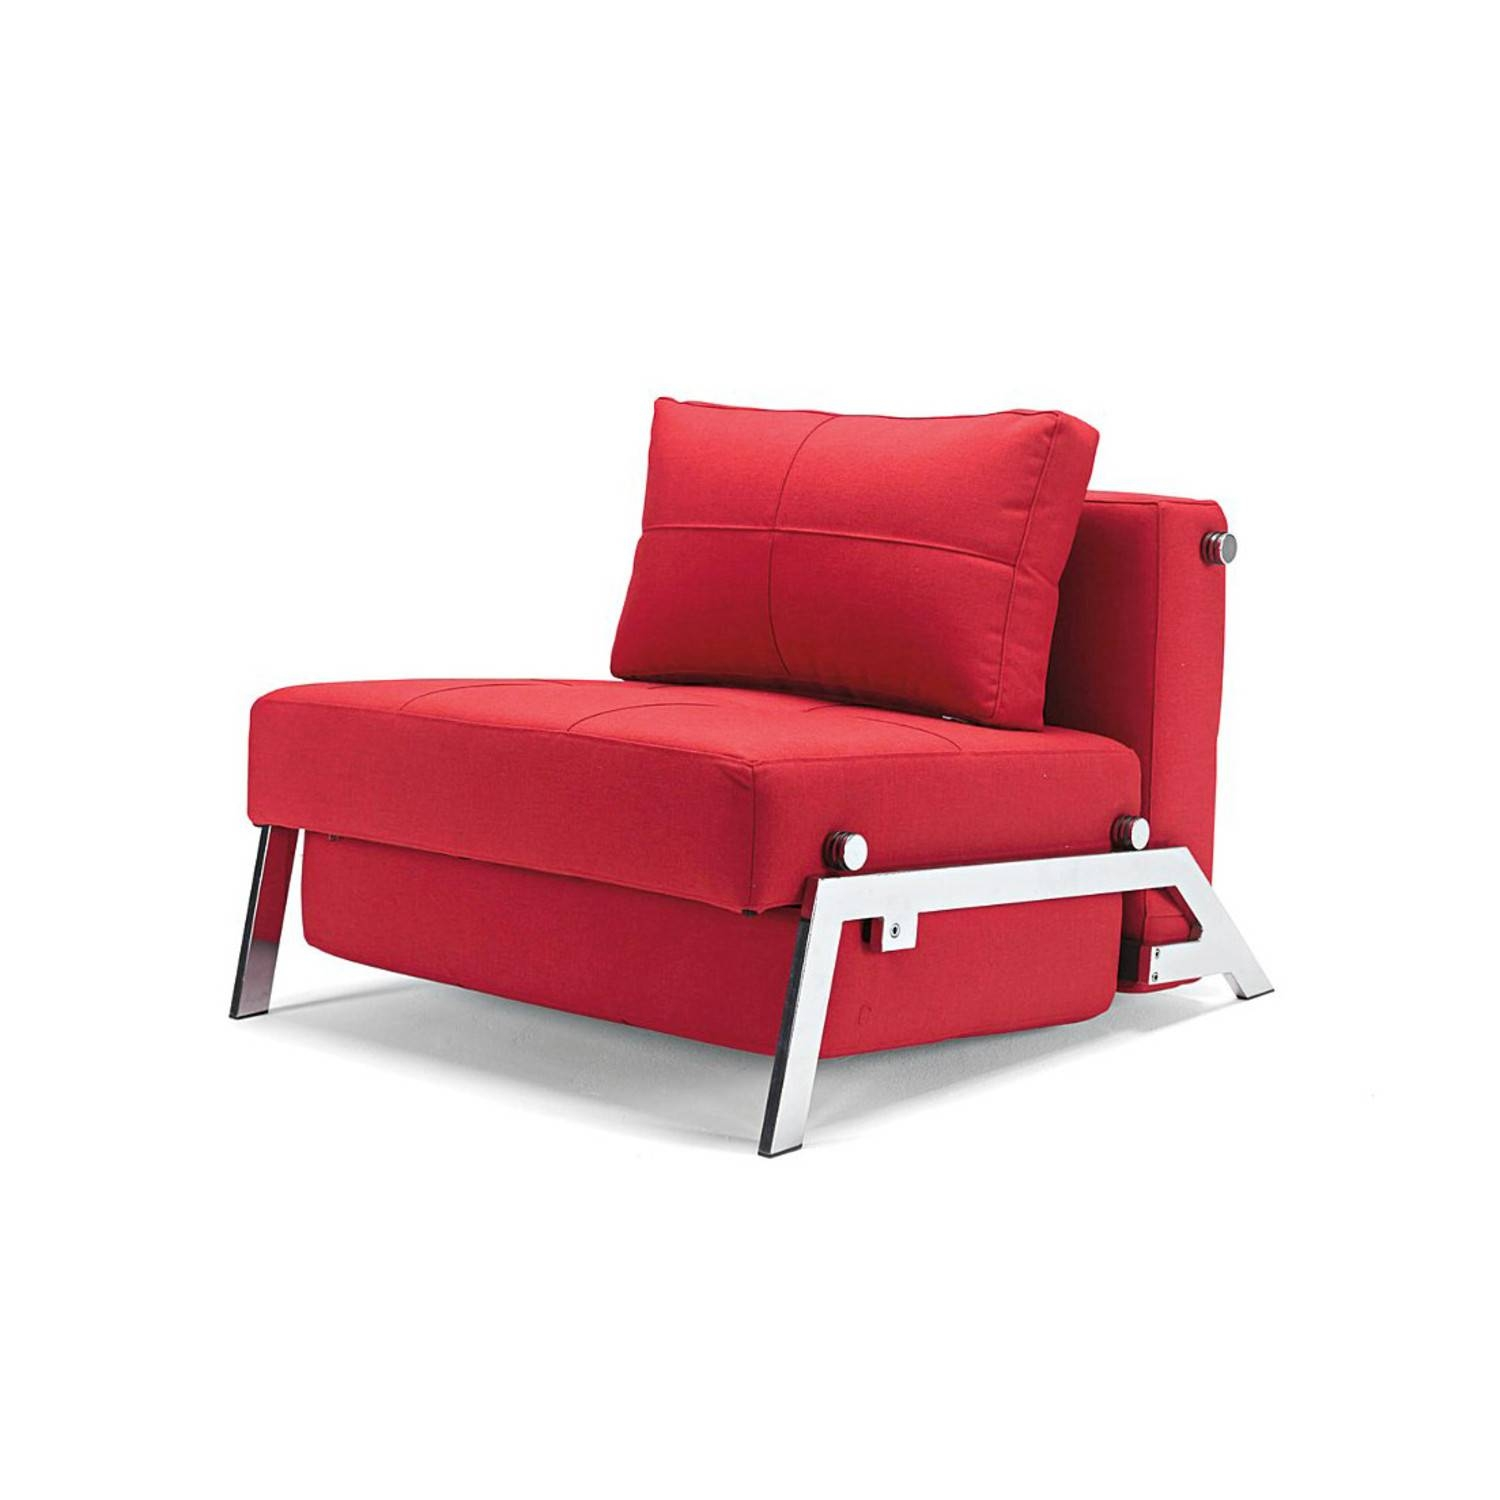 Sofas Center : 30 Impressive Single Sofa Bed Chair Photos for Single Chair Sofa Beds (Image 25 of 30)